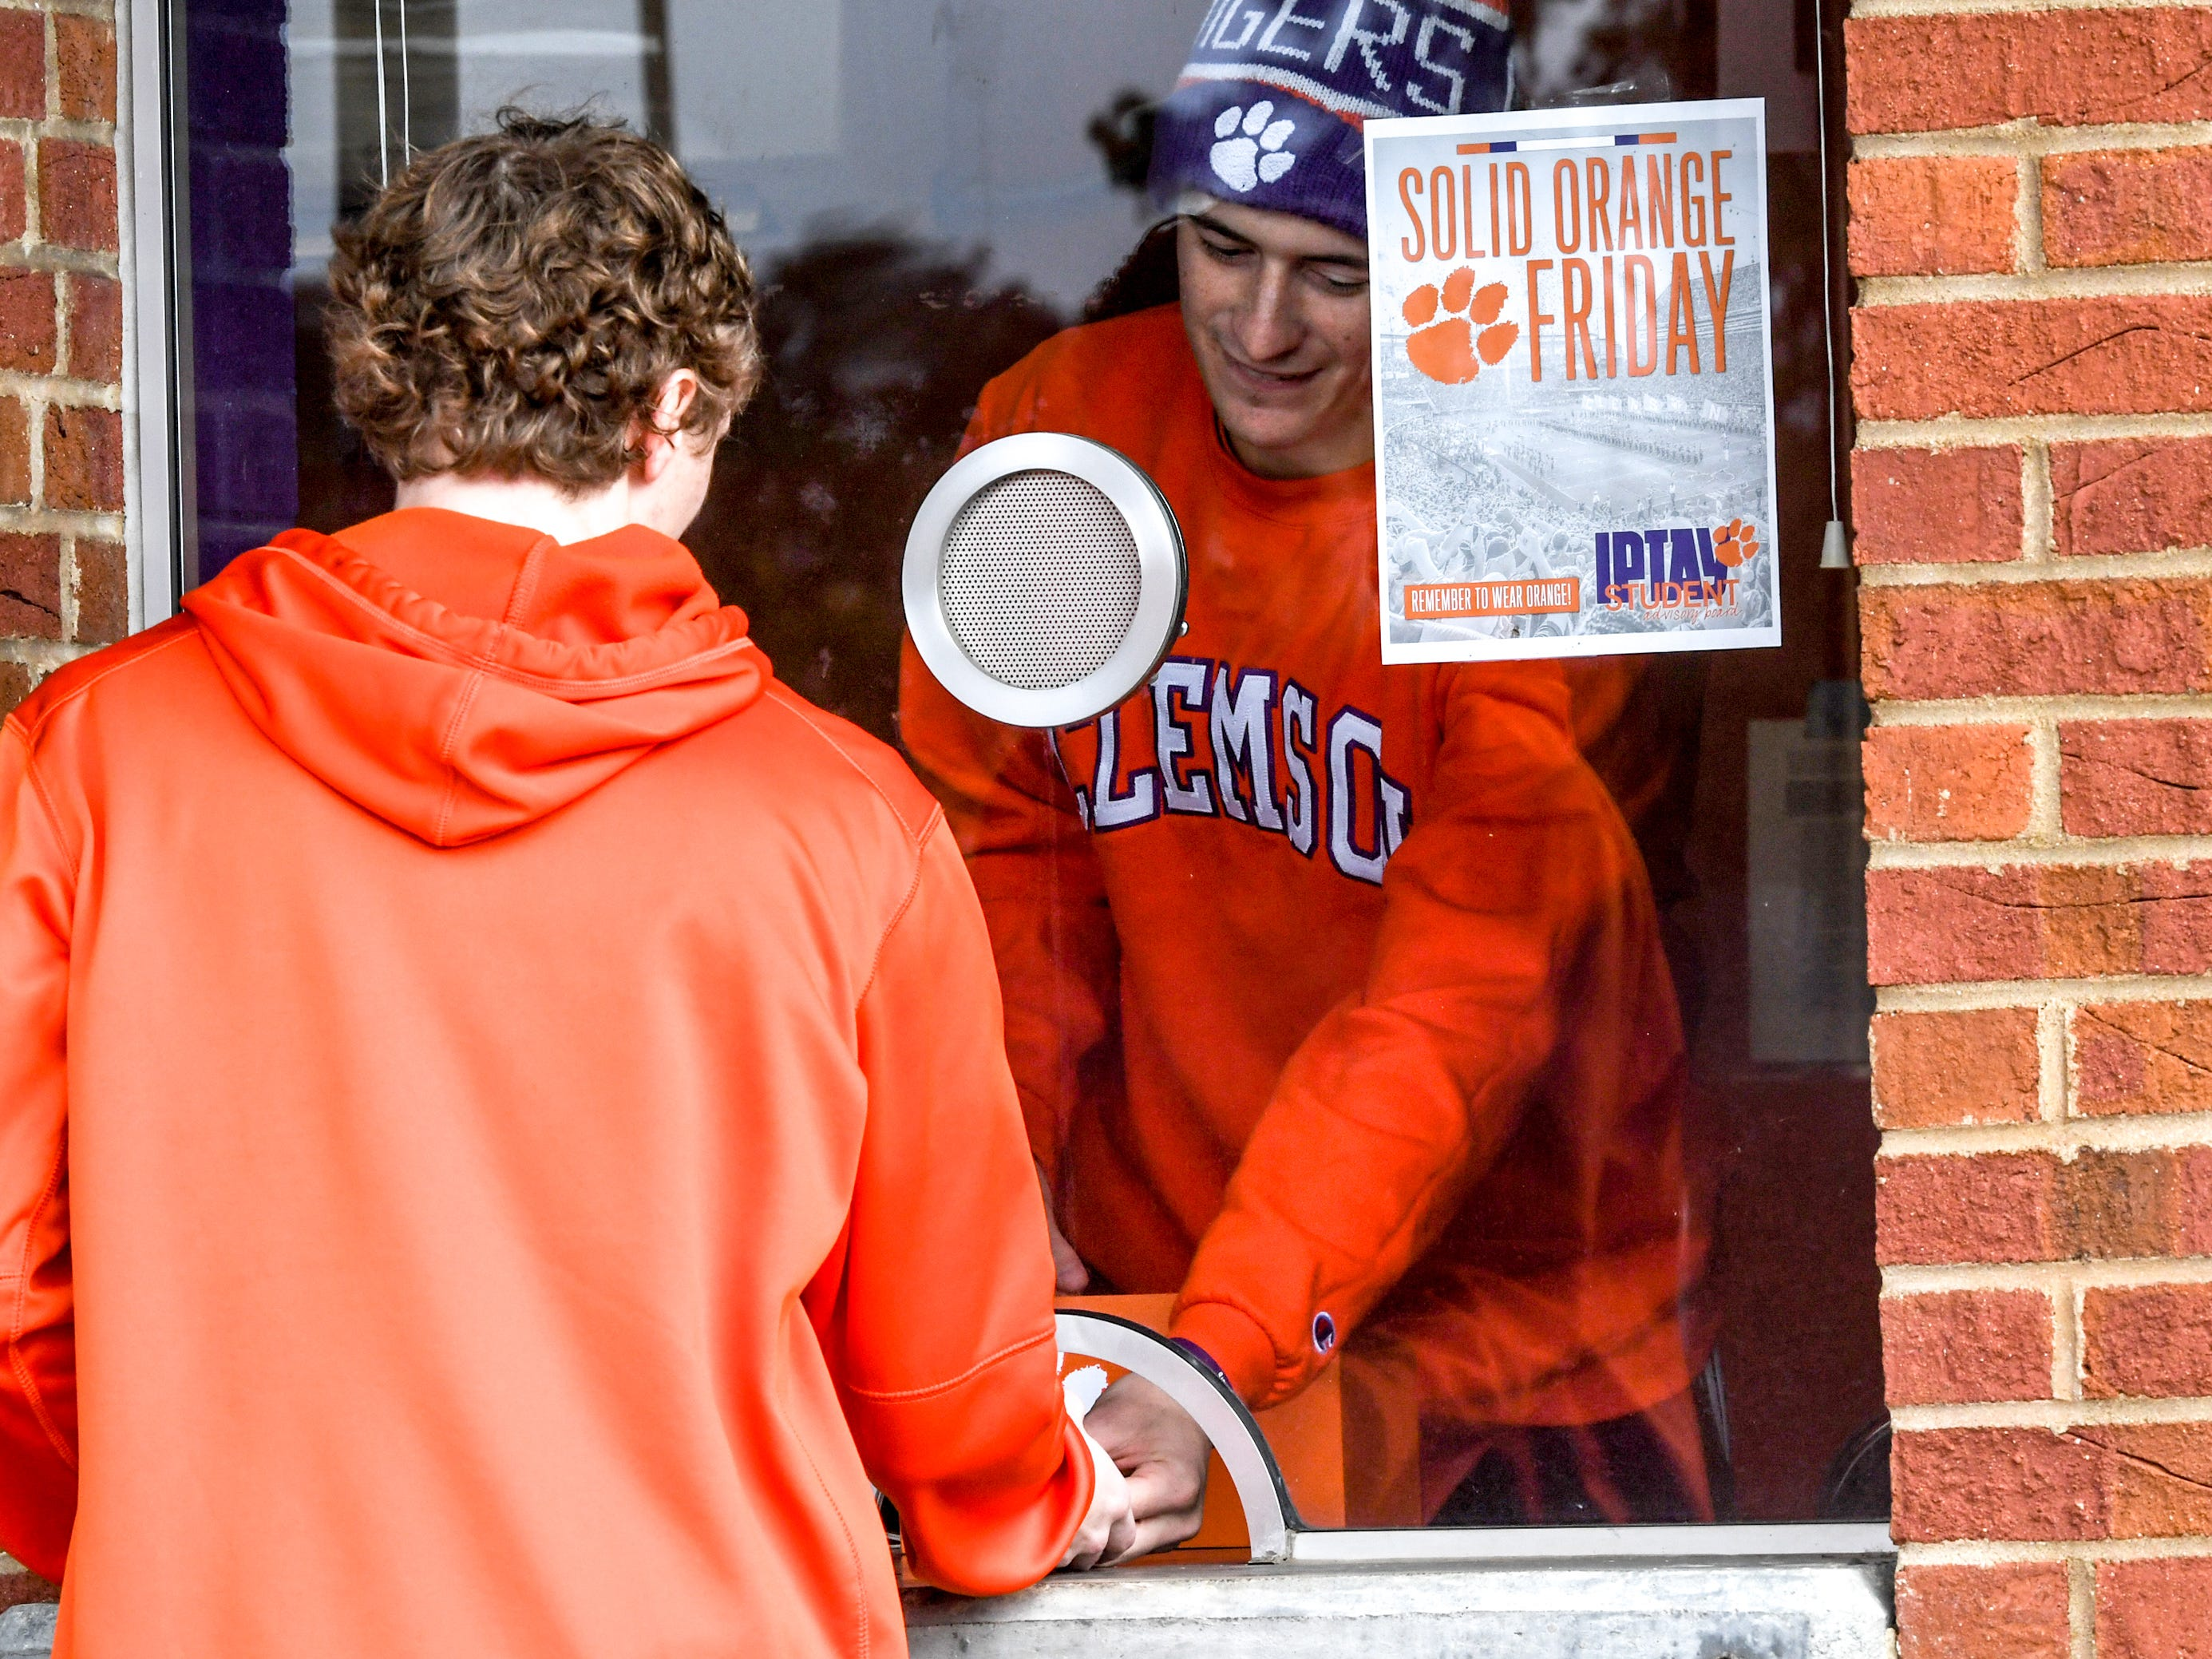 A student arrives to pick up his ticket at will call as fans tailgate hours before kickoff outside Memorial Stadium, before the South Carolina at Clemson football game in Clemson on Saturday, November 24, 2018.